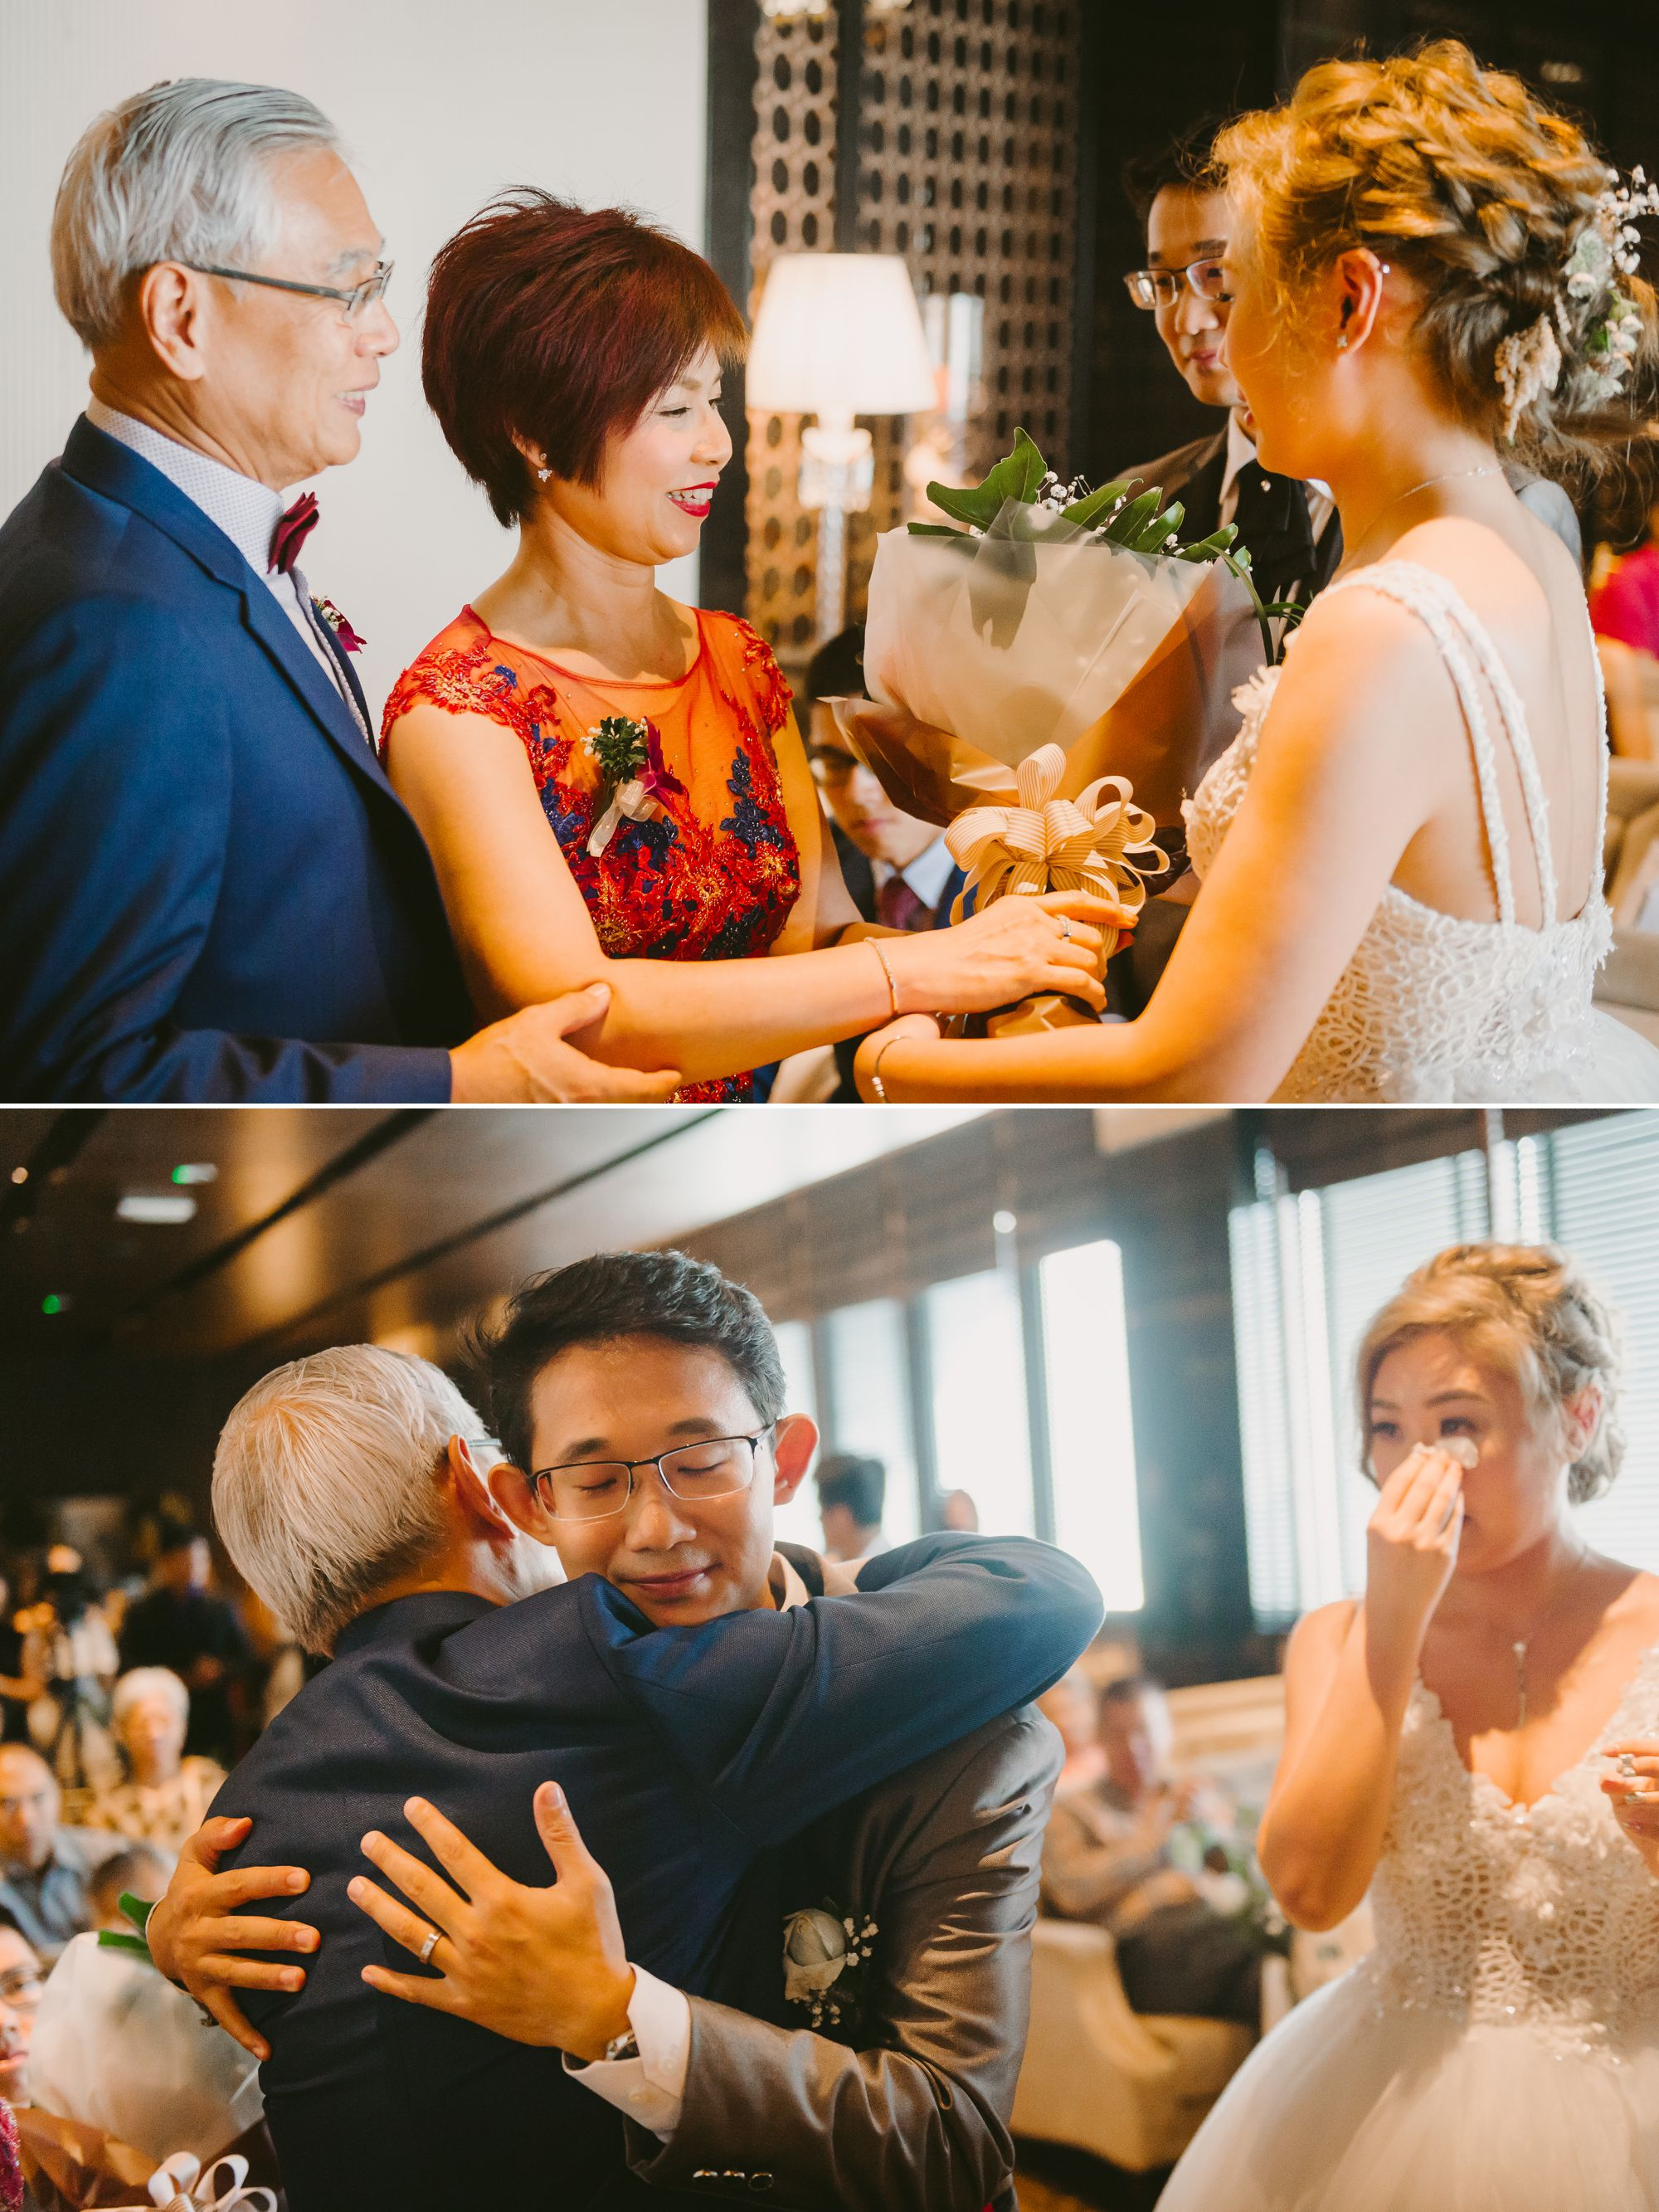 wedding_photographer_singapore 25.jpg